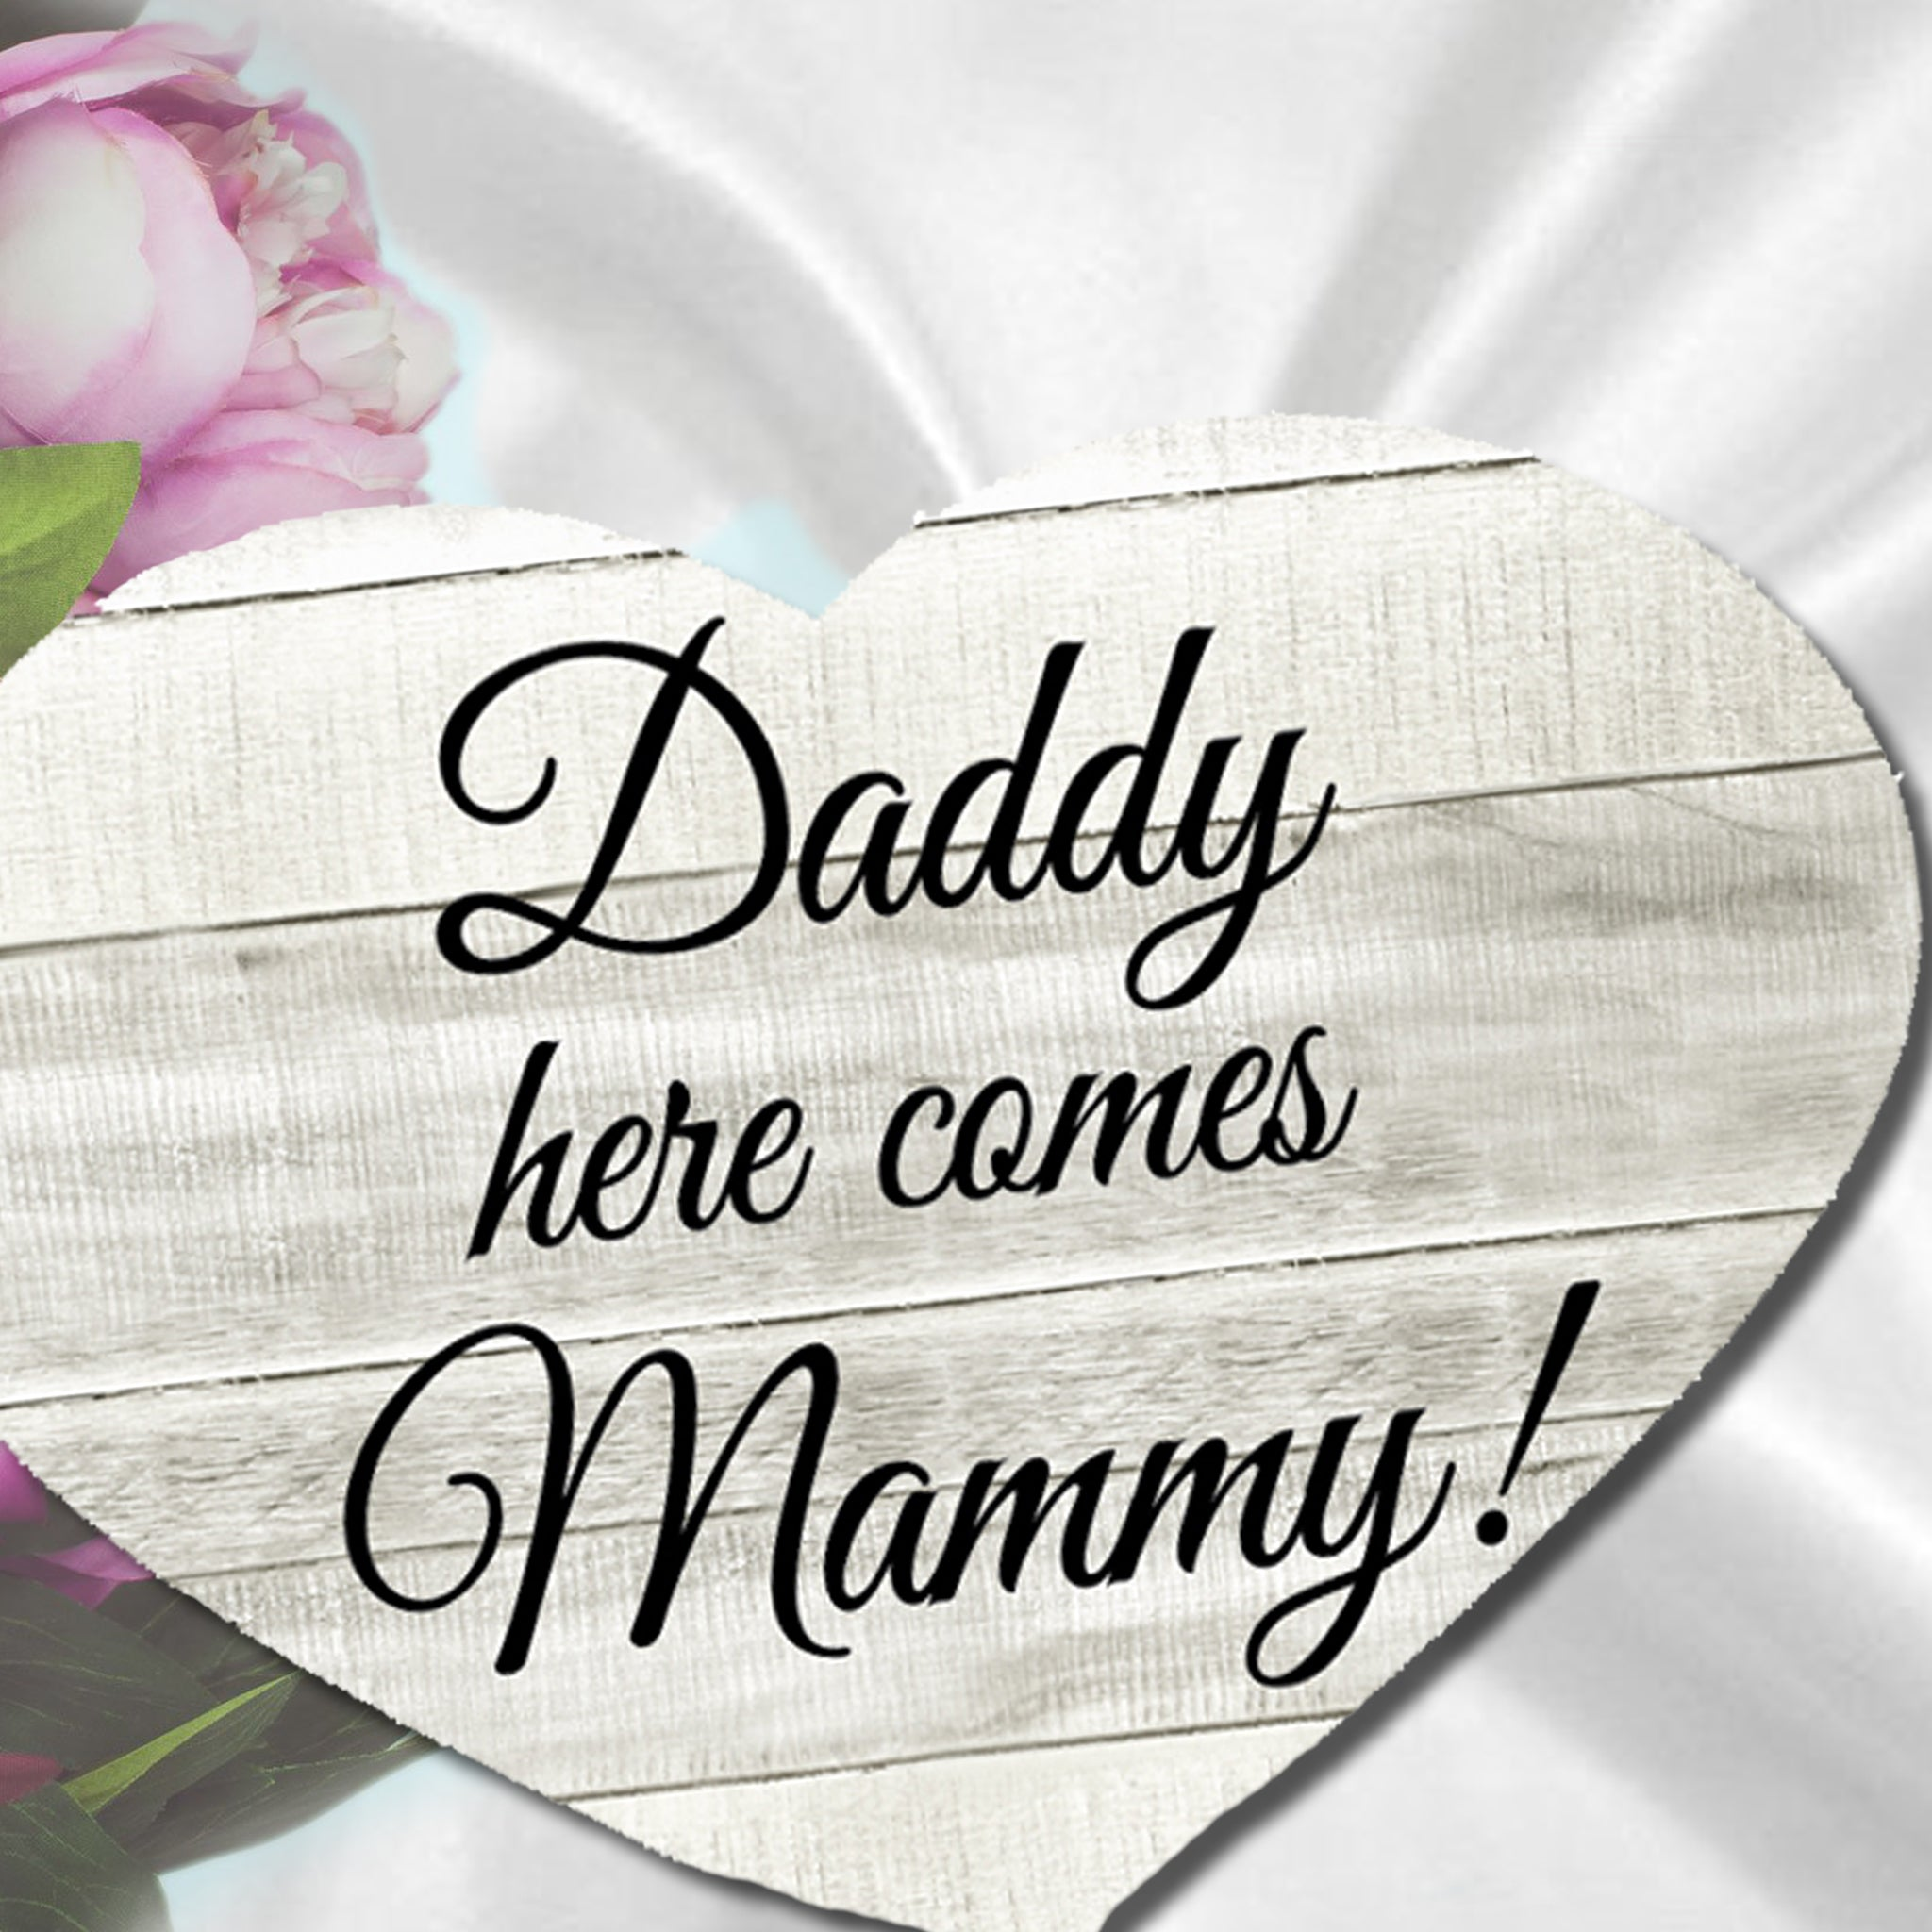 Single sided wood effect pageboy sign, Daddy here comes Mammy